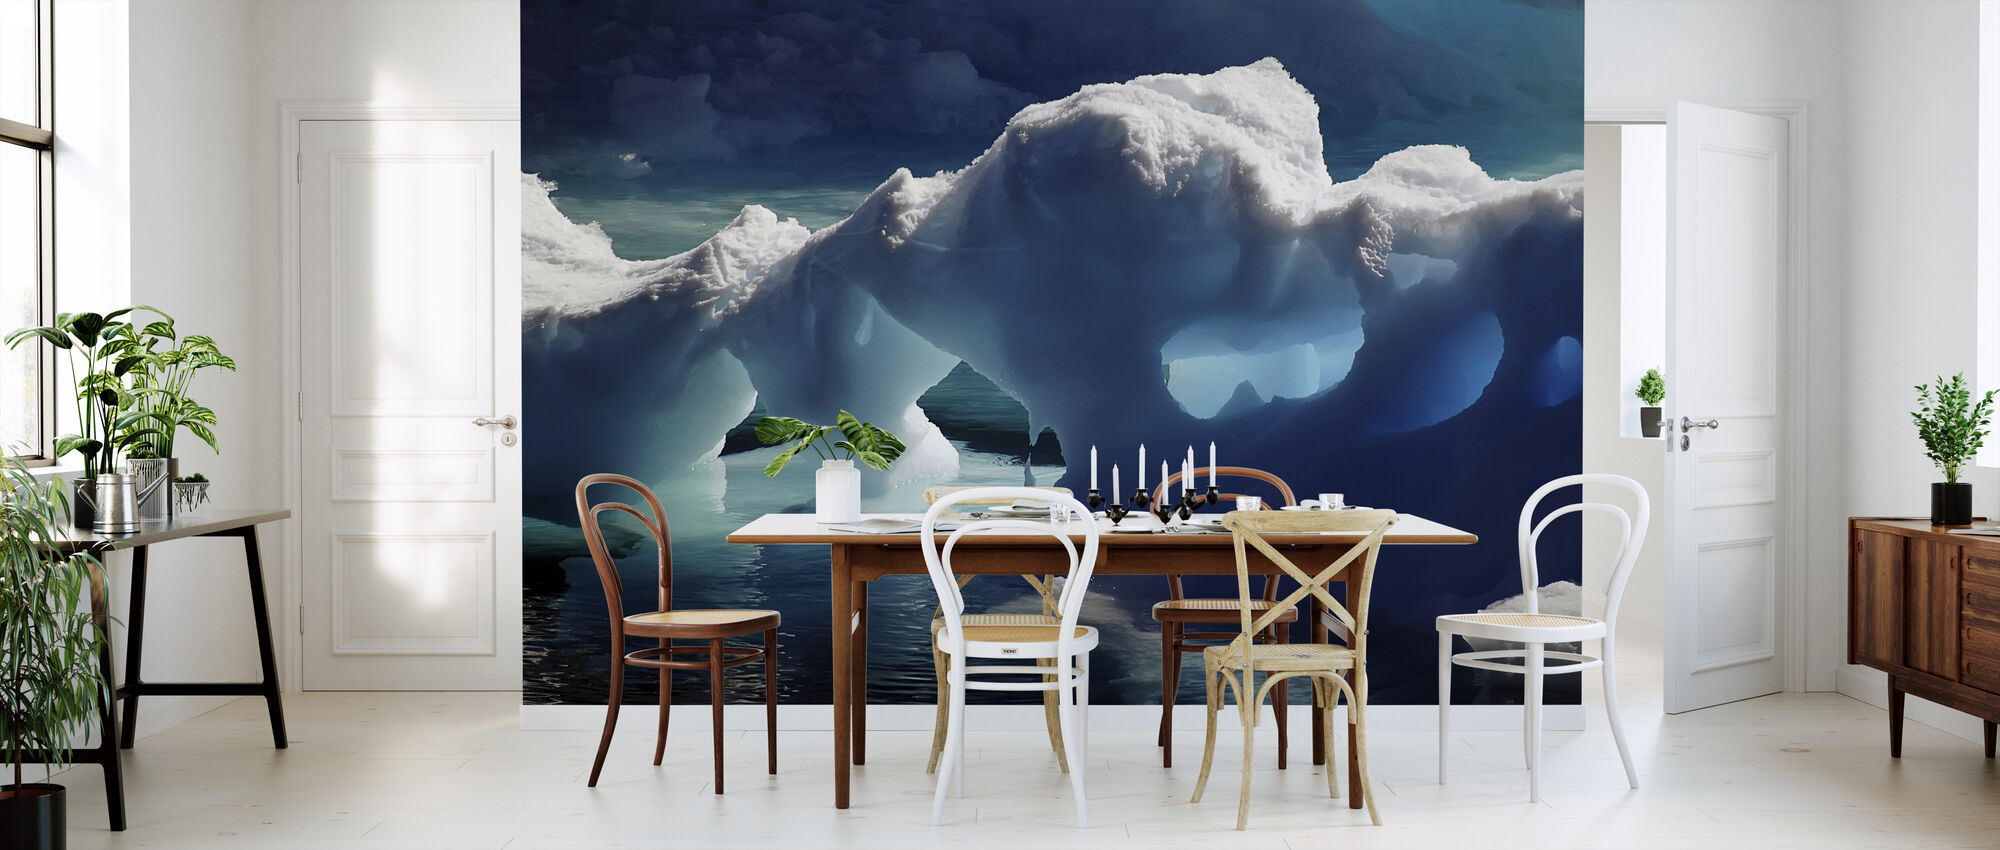 Antarctic Ice Caves - Wallpaper - Kitchen